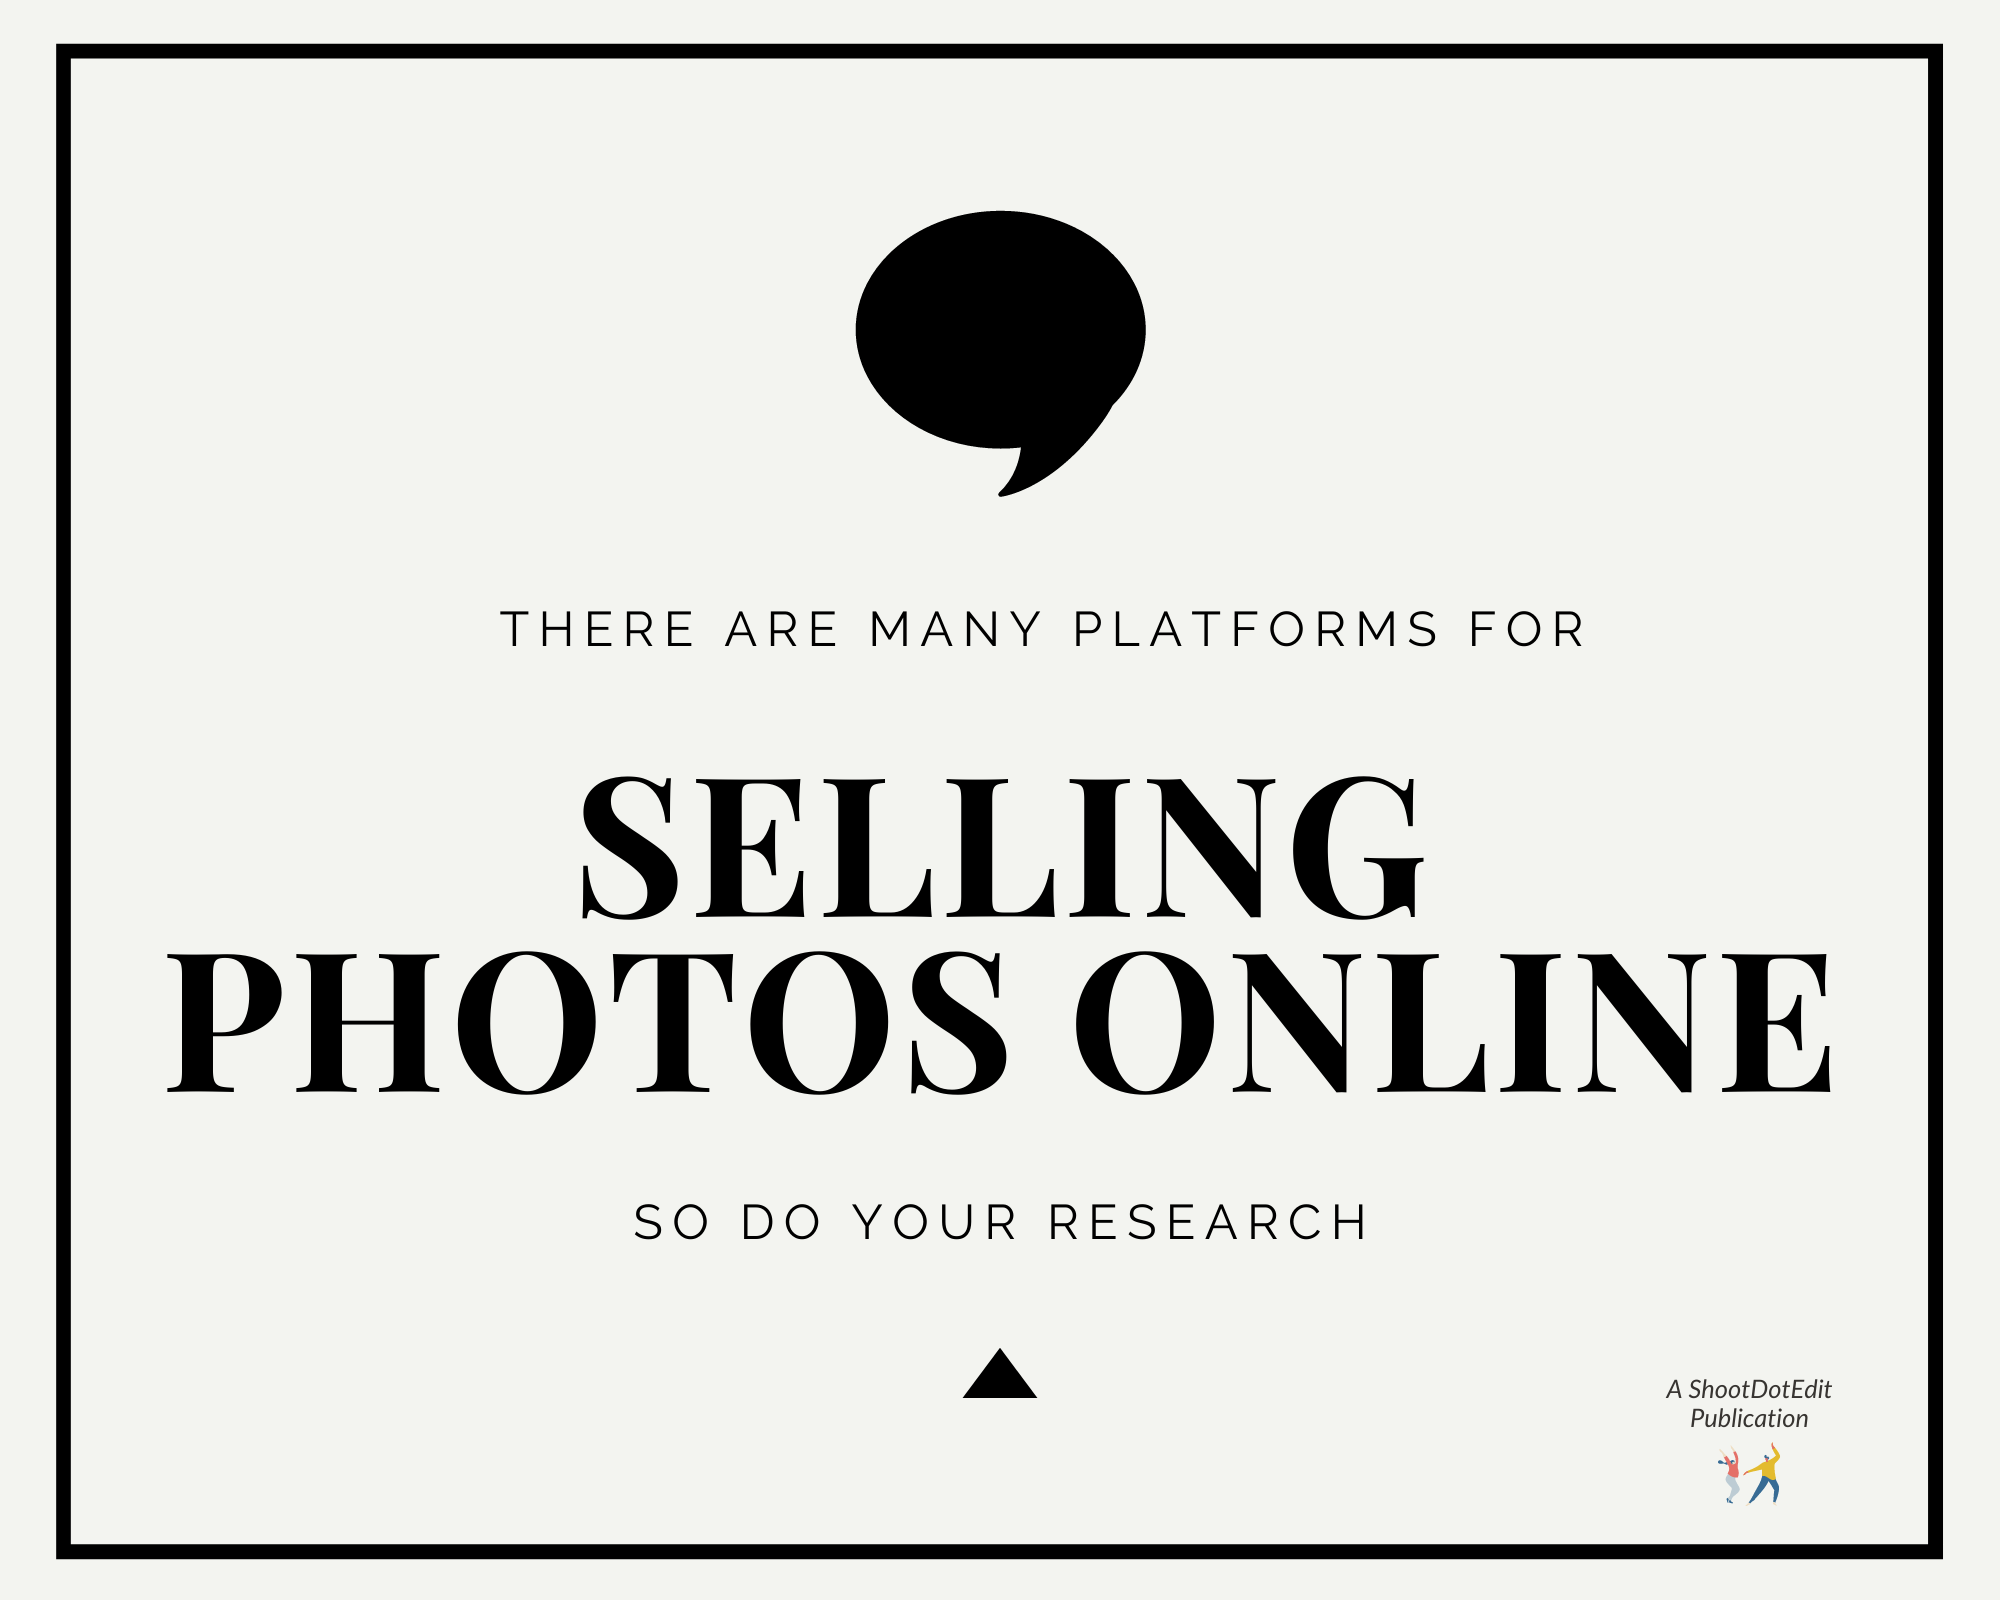 Infographic stating there are many platforms for selling photos online so do your research